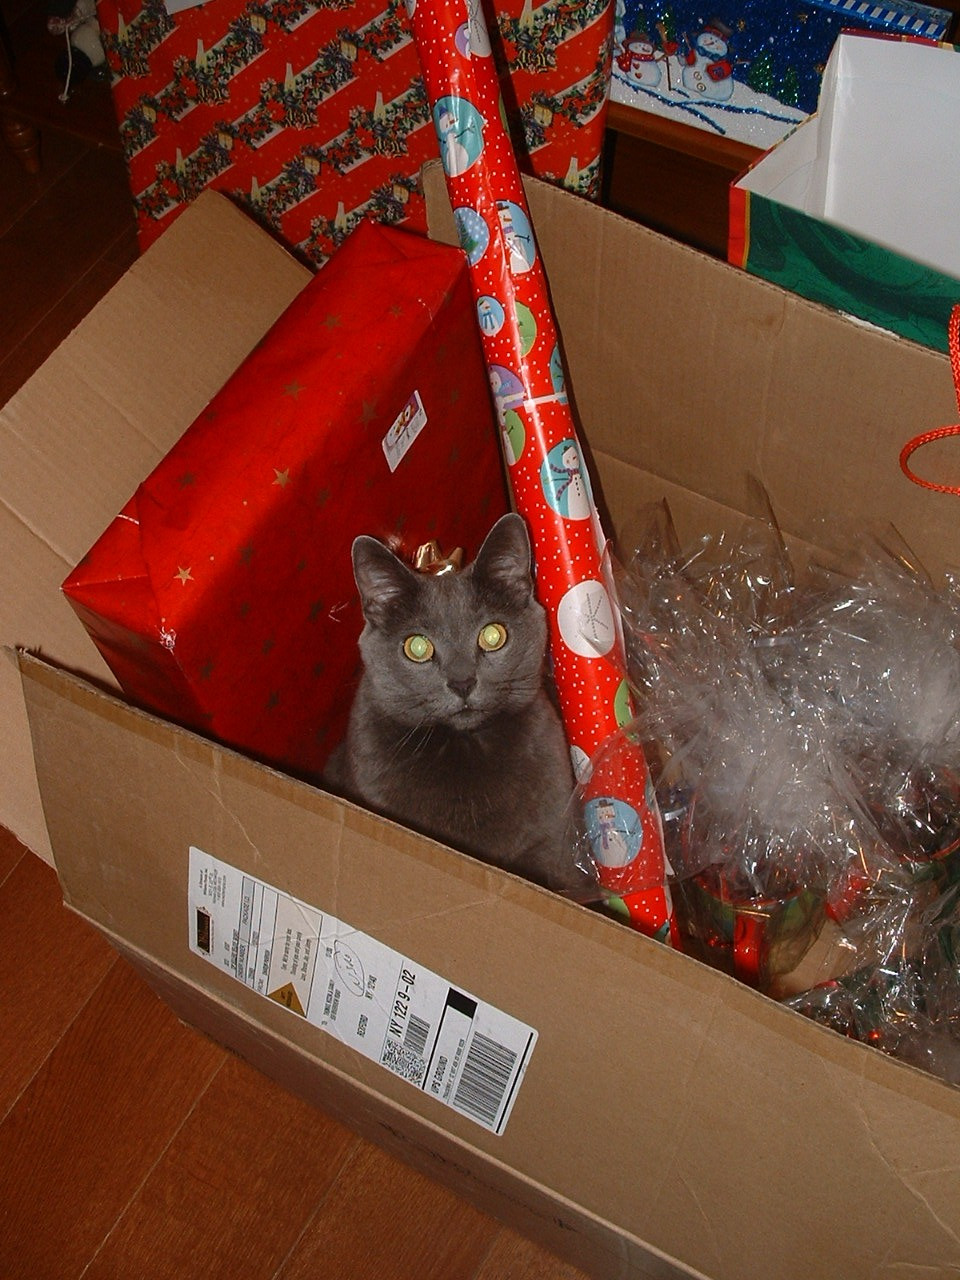 Cat in a box filled with wrapping paper and presents